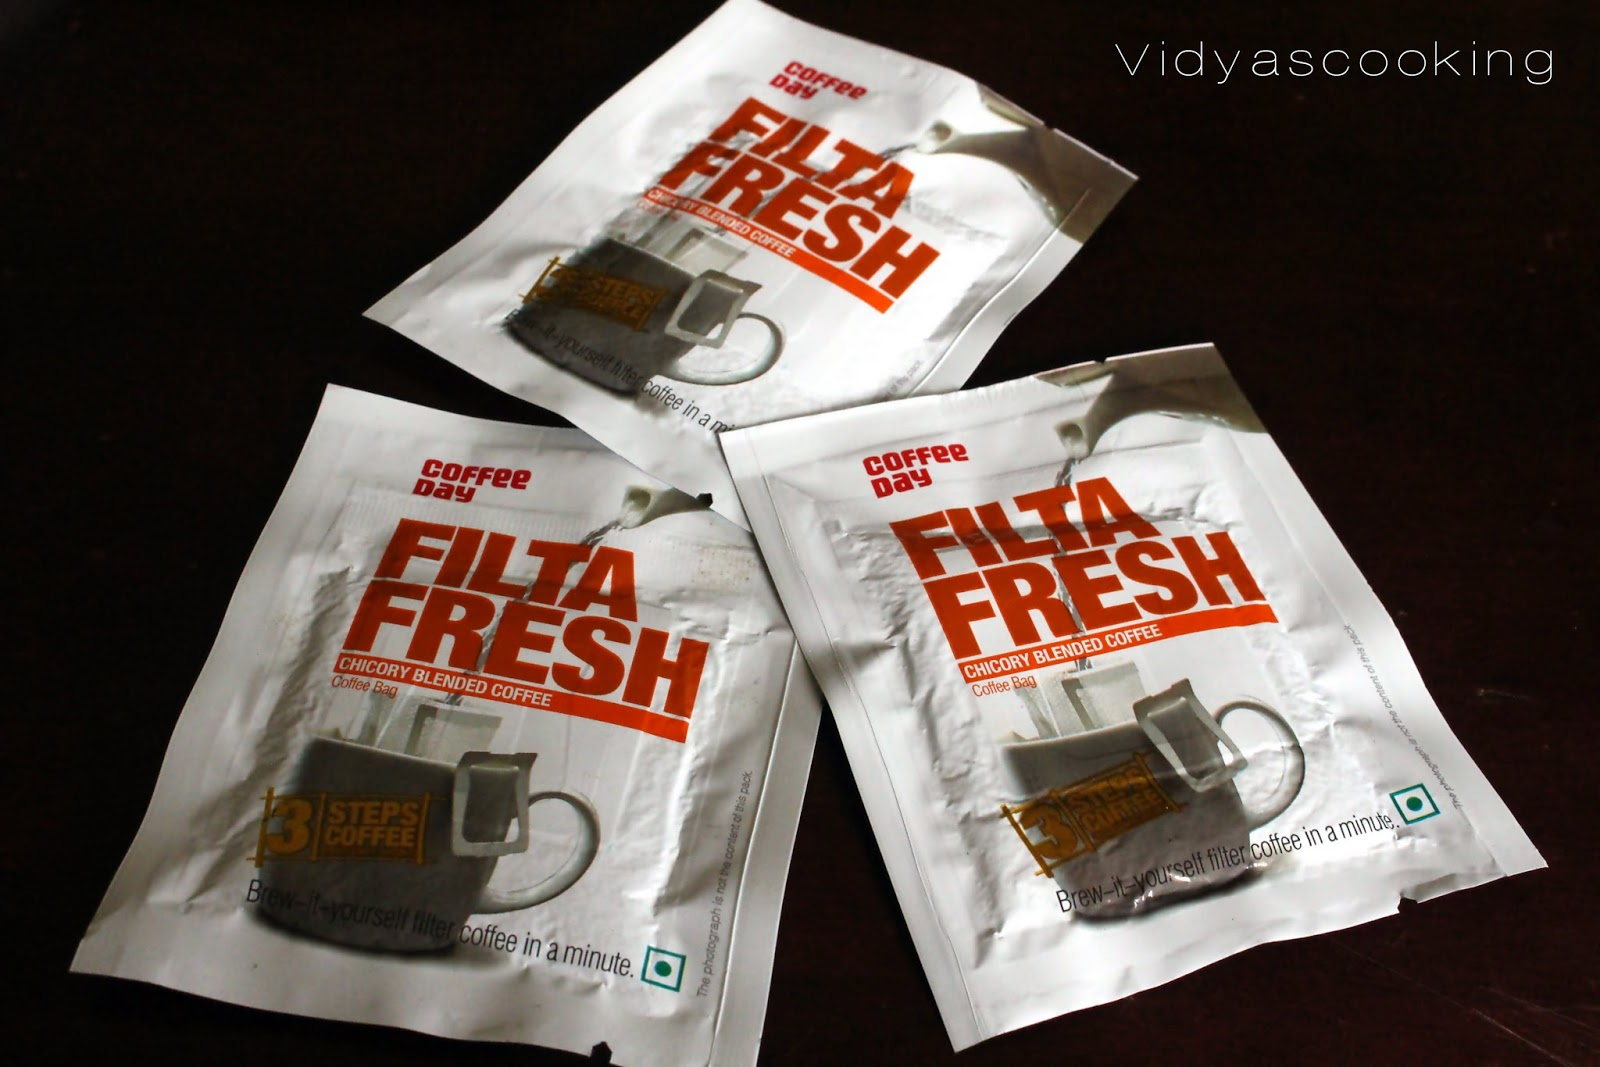 Filta Fresh Coffee Comes In Individually Vacuum Sealed Packet The Is Potent With 90 And 10 Chicory Easy To Follow Instructions Just Takes